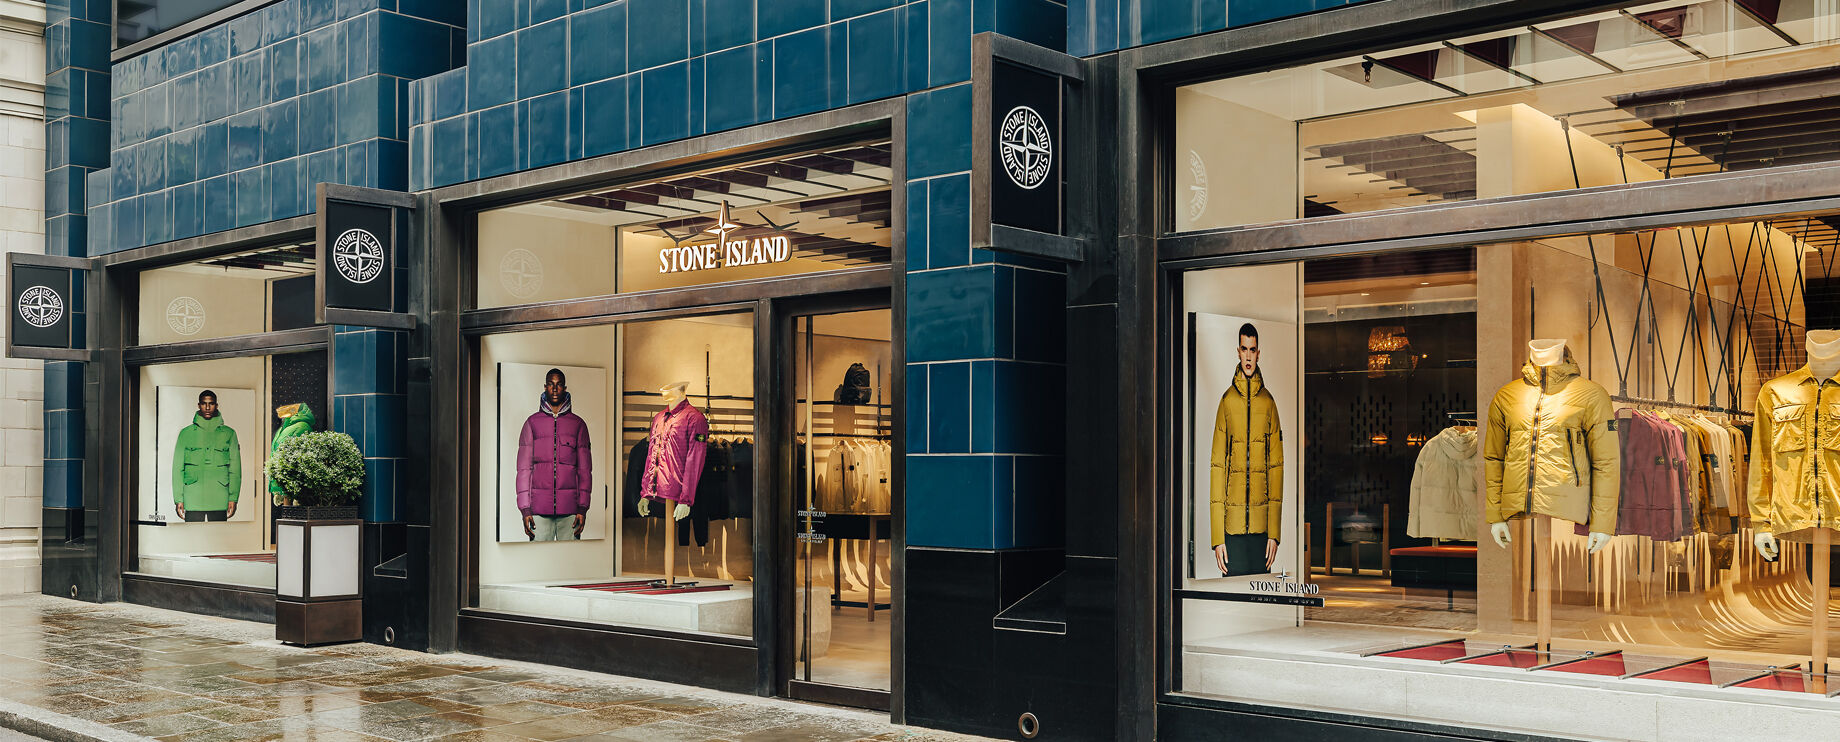 Angled view of storefront with three window displays of various jackets.